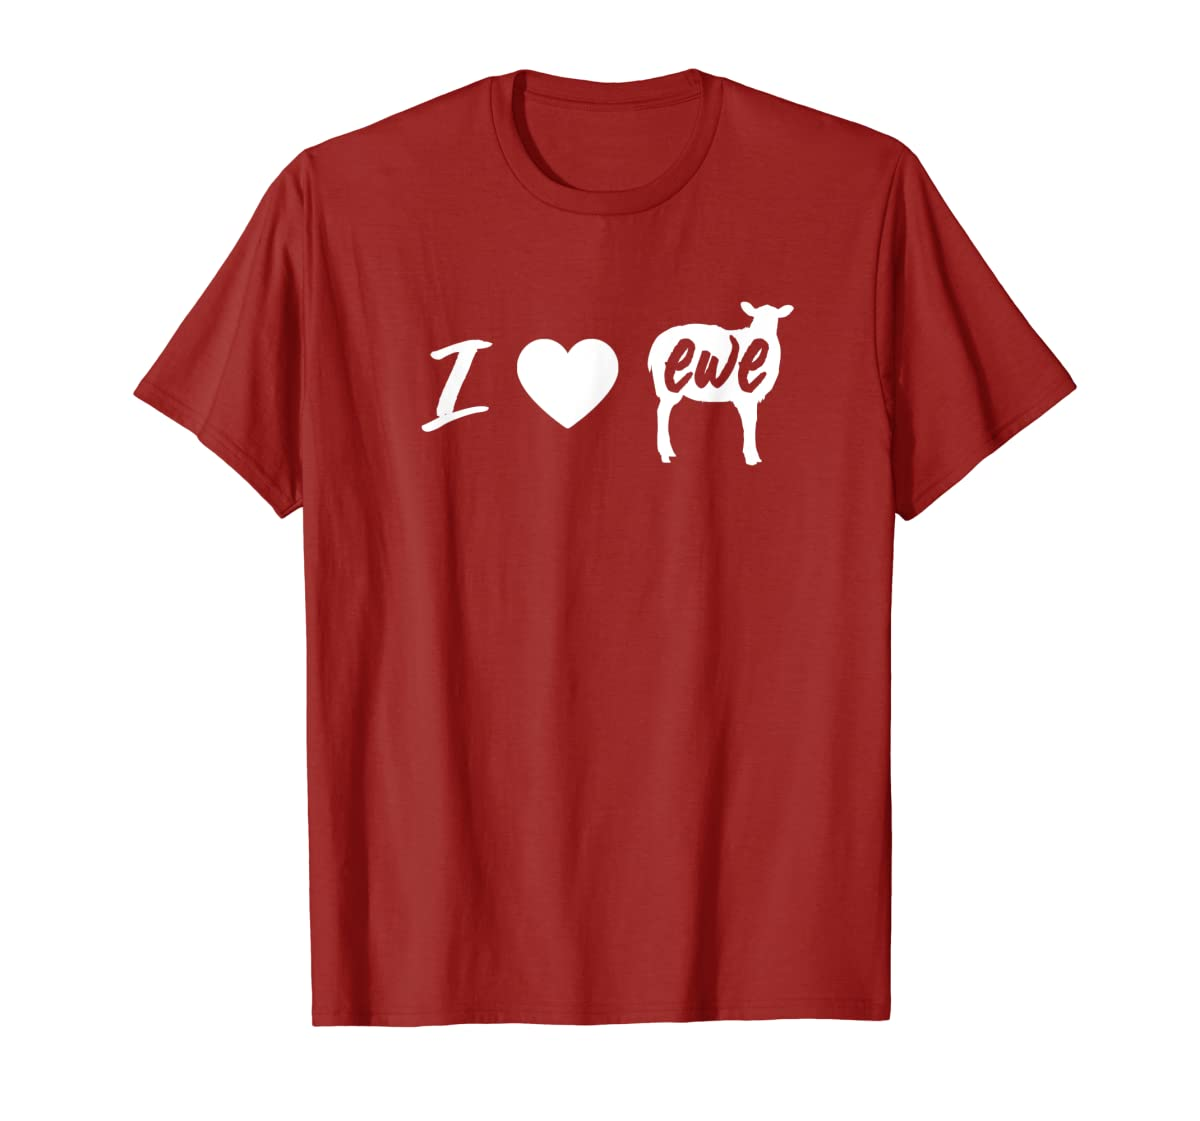 I Love Ewe - I Love You Sheep Pun Shirt-Men's T-Shirt-Red